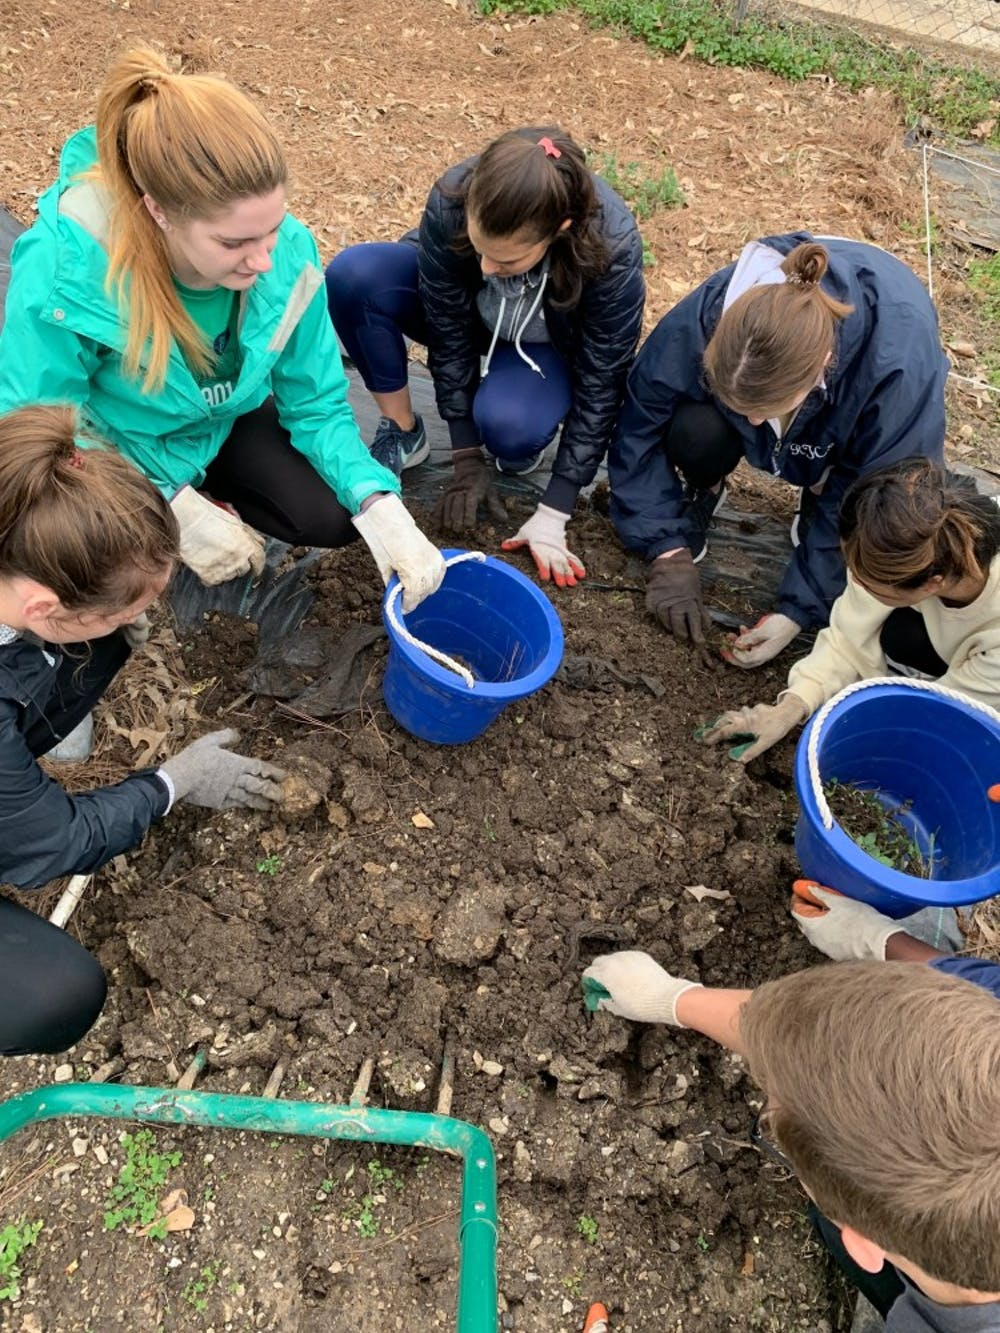 Students spend their break serving others